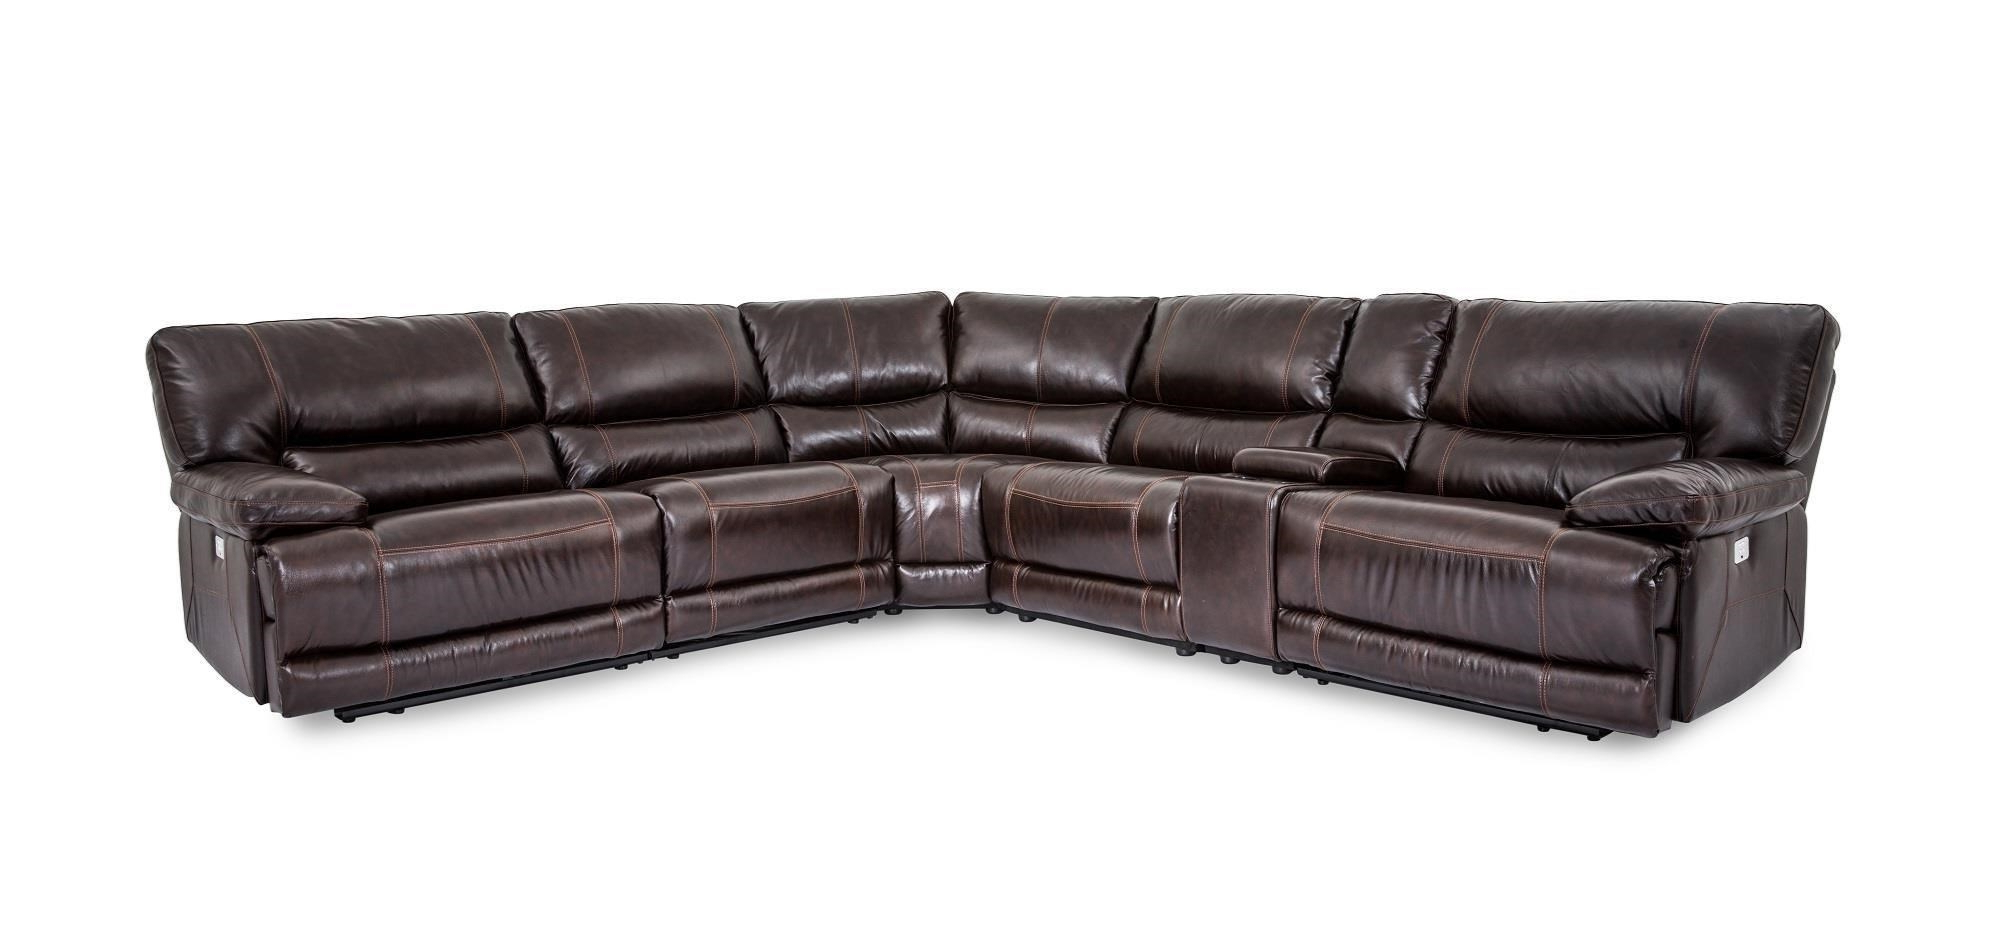 Raven Power Reclining Sofas Inside Favorite 7 Pics Cheers Sofa Sectional And Review – Alqu Blog (View 19 of 20)